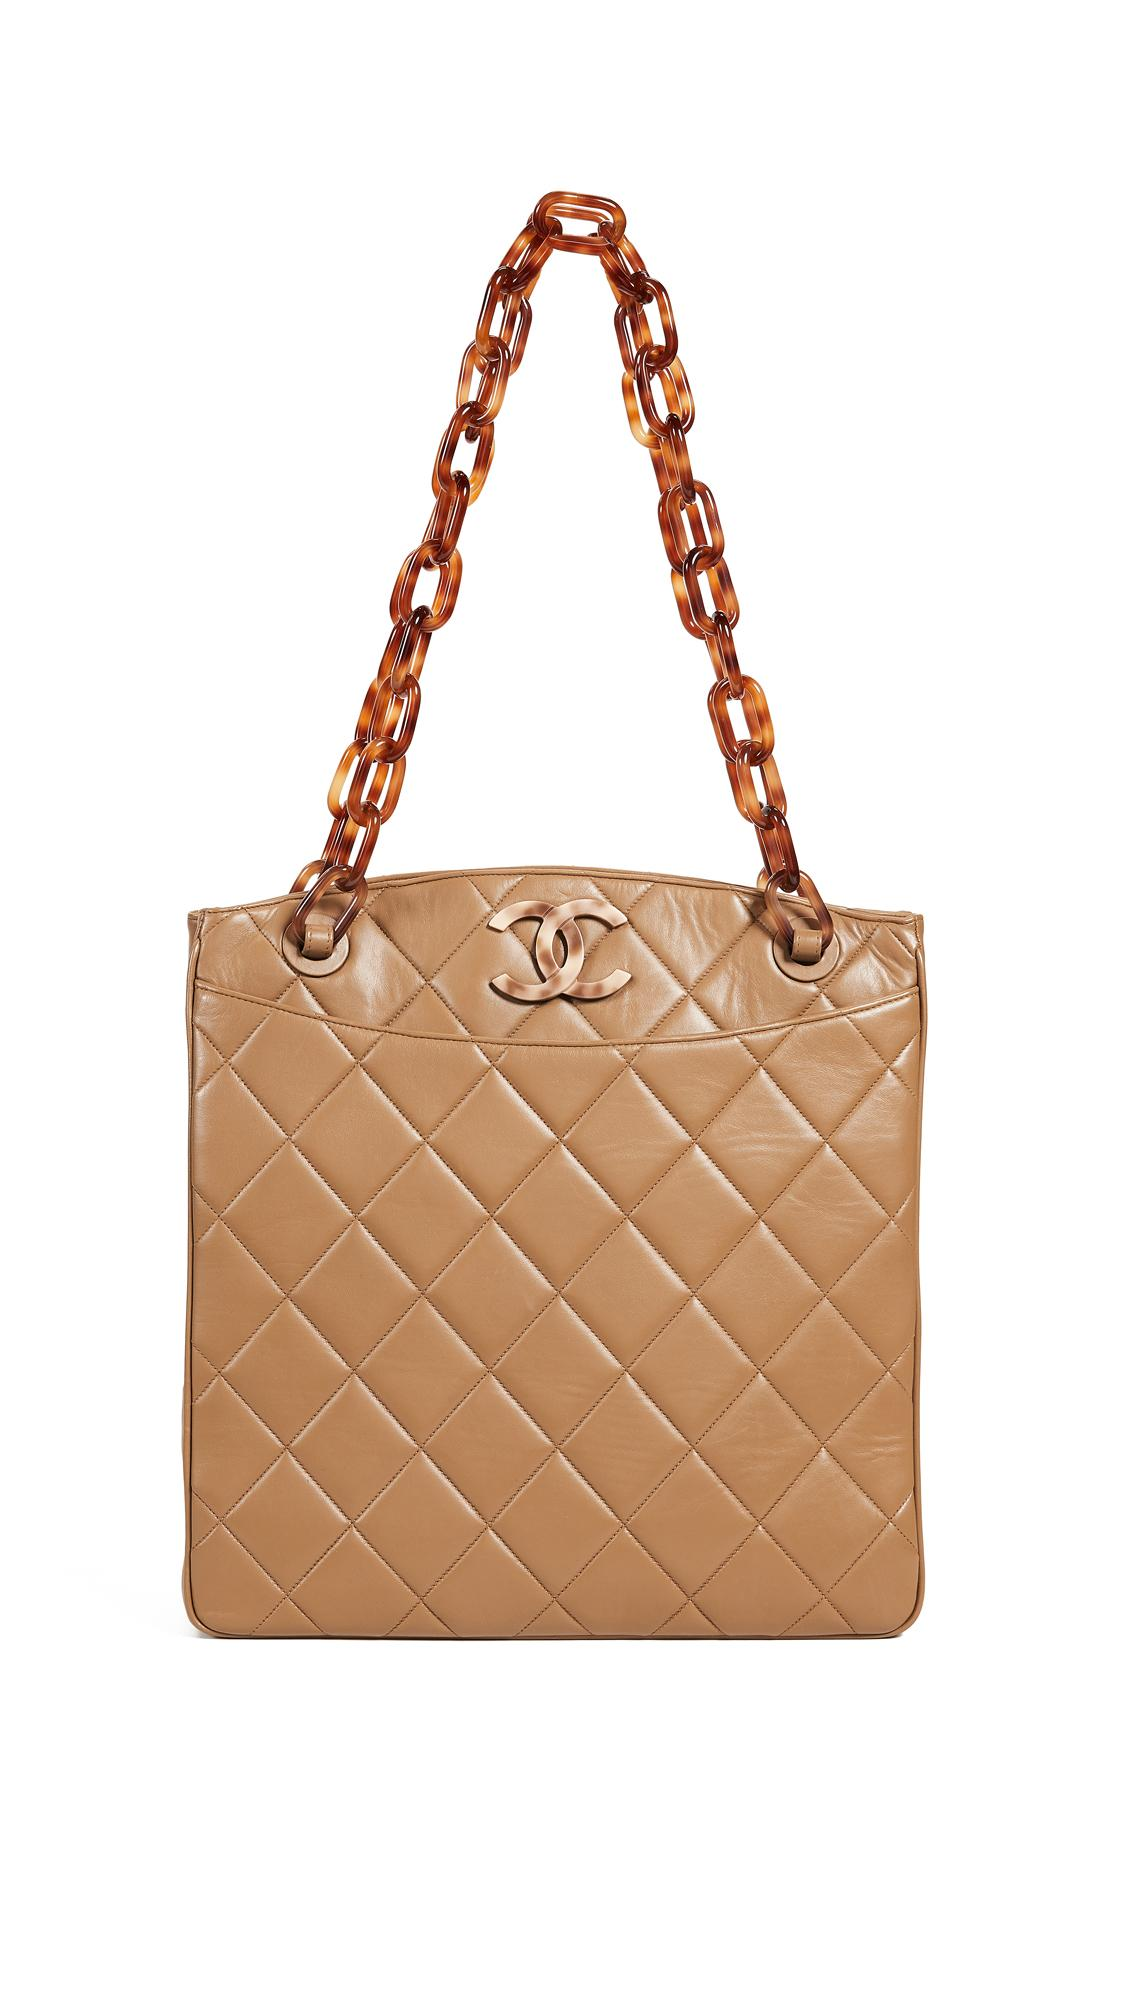 de64a78f4a10 What Goes Around Comes Around Chanel Lambskin Turnlock Medium Tote Bag In  Brown